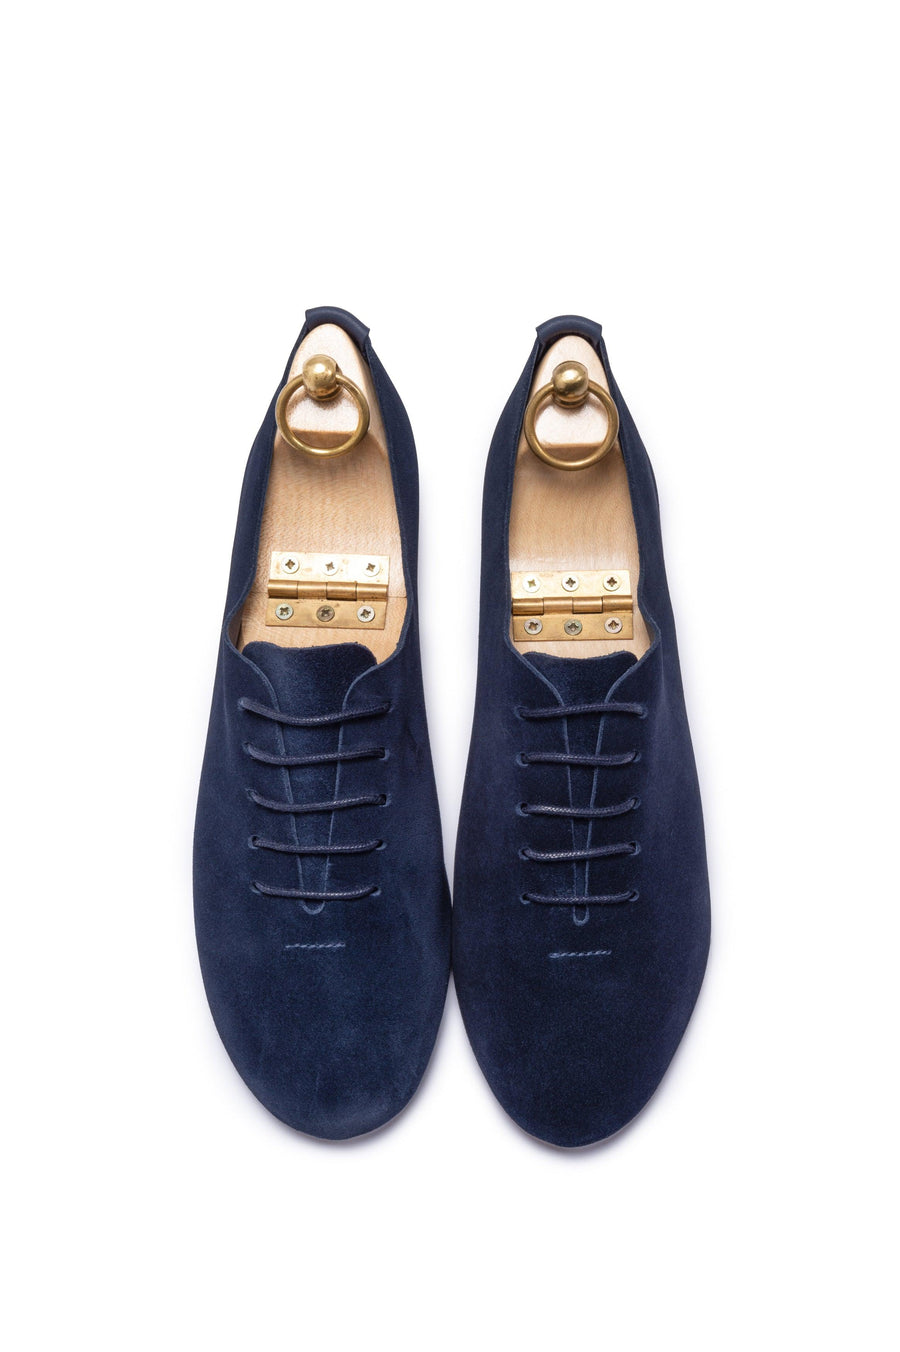 REGENT WHOLECUT SHOE - SOLE LINE - NAVY SUEDE